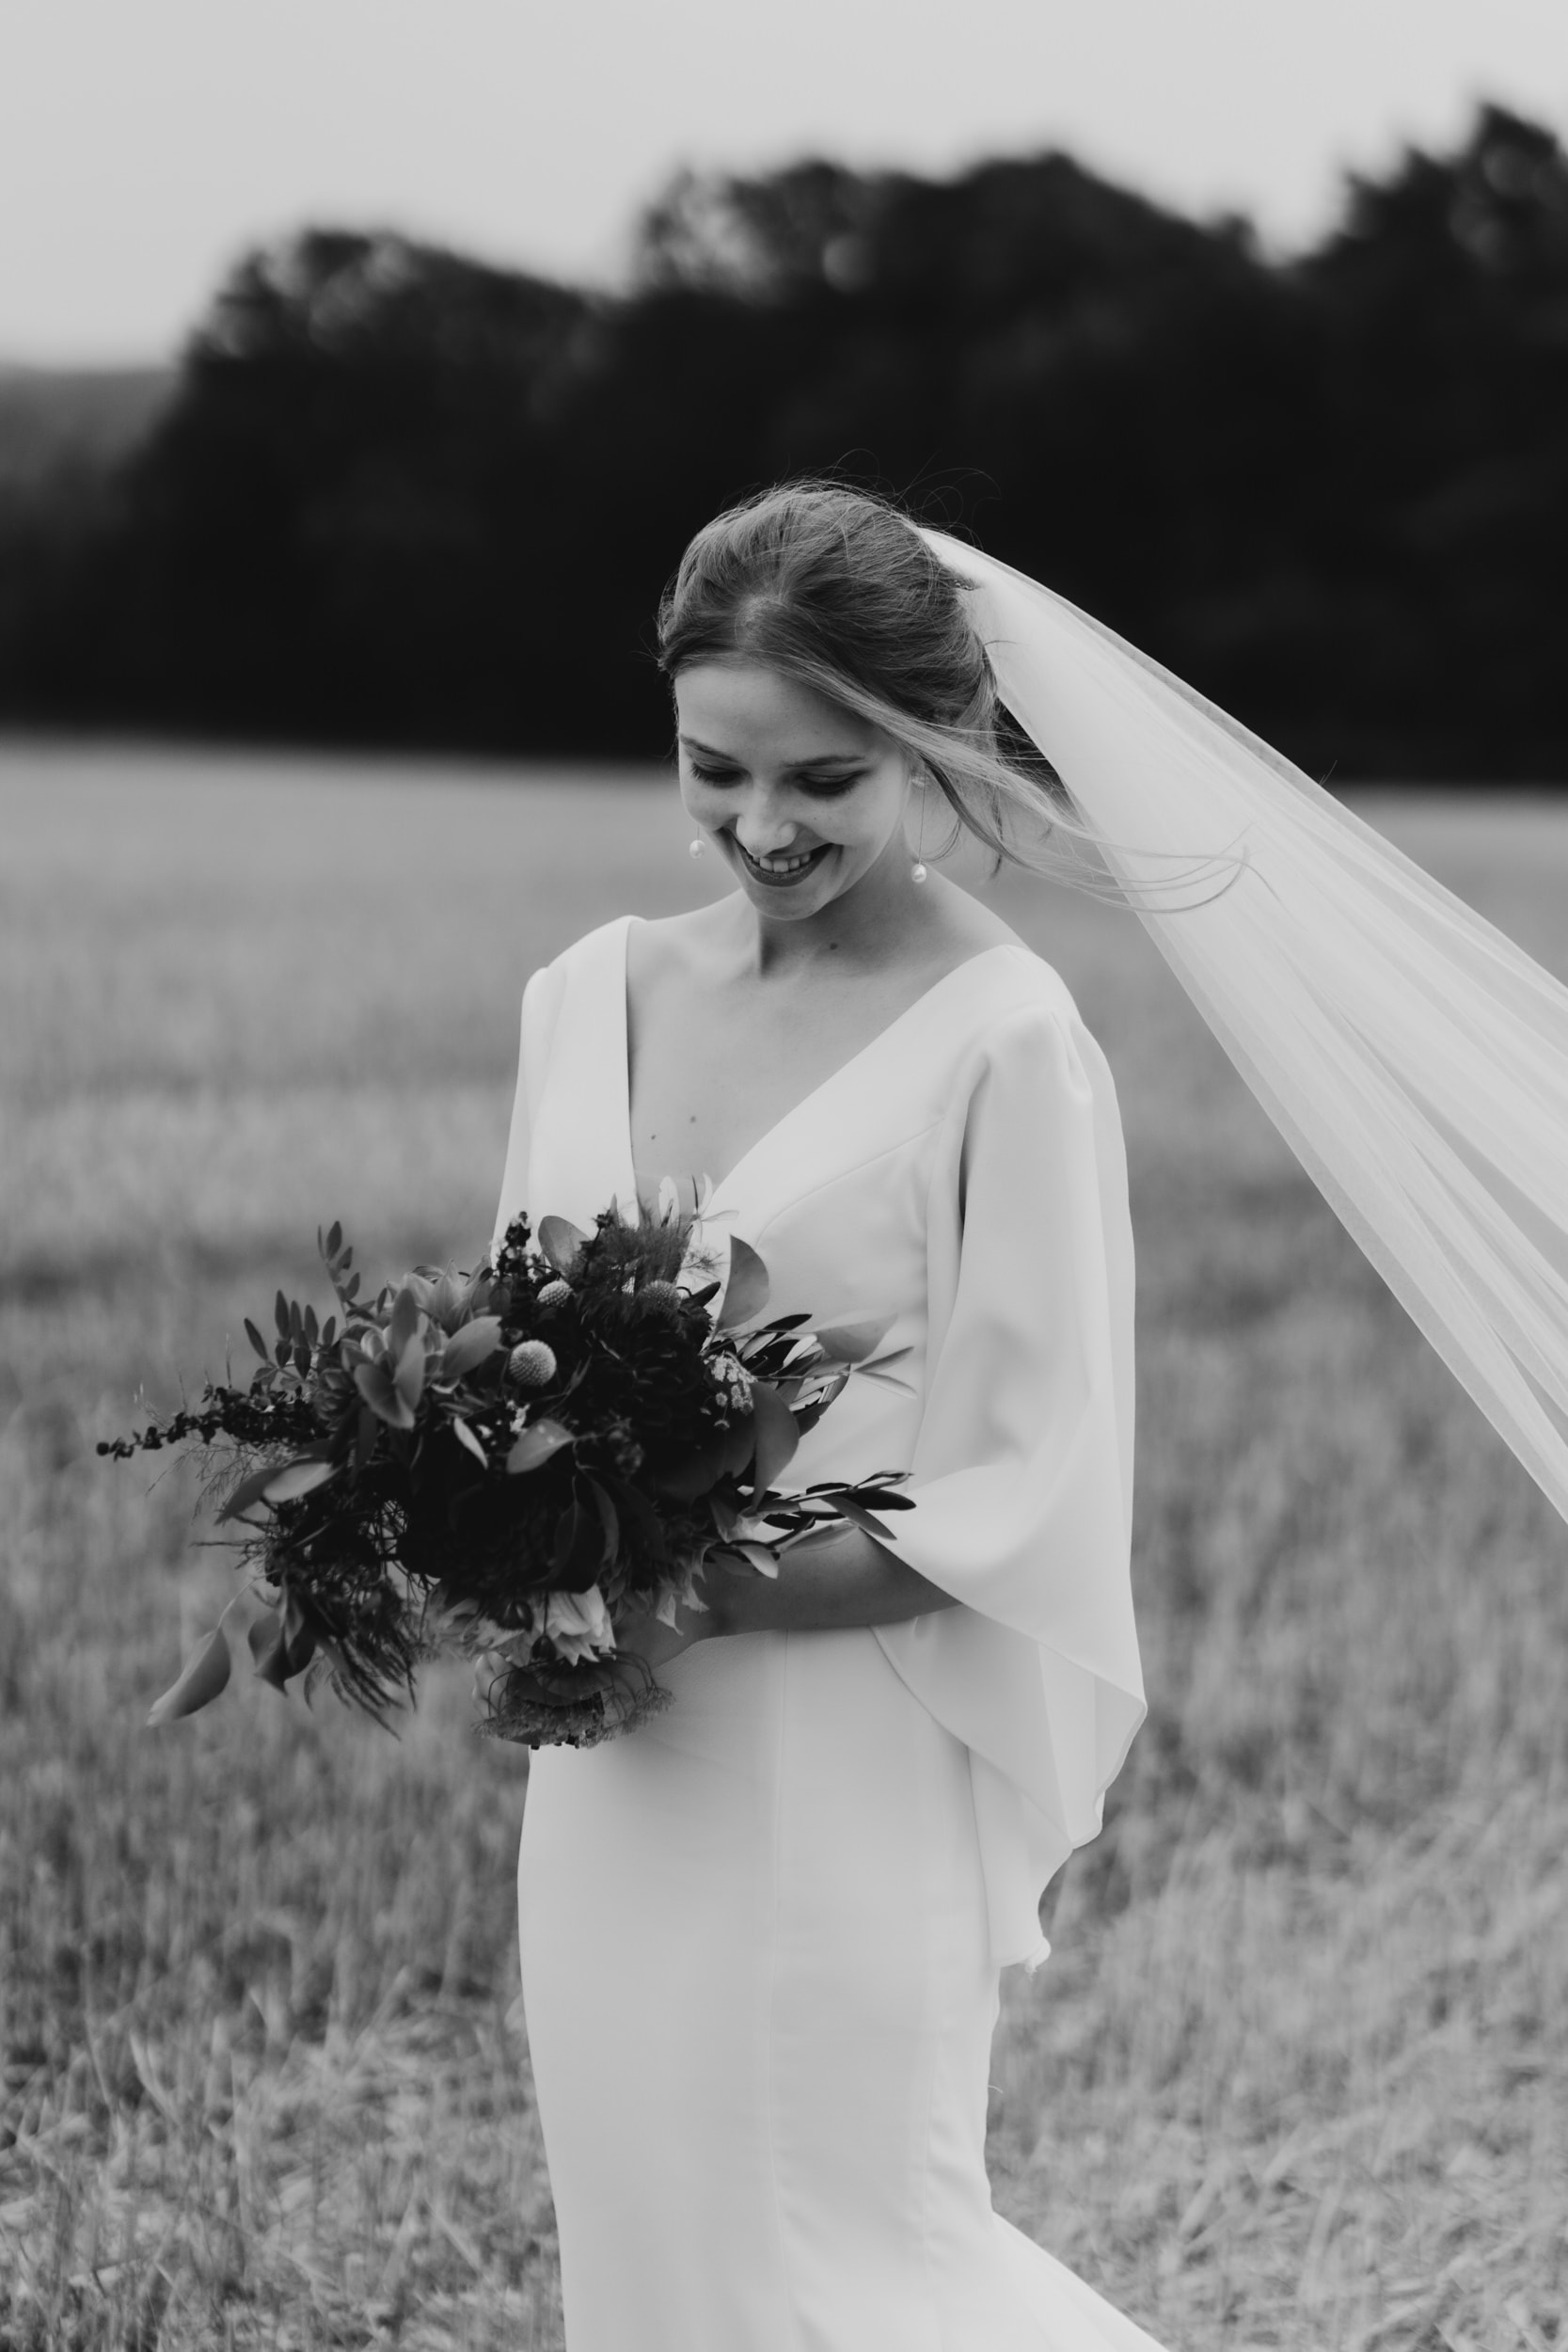 bride with veil blowing in wind at rye hill barn